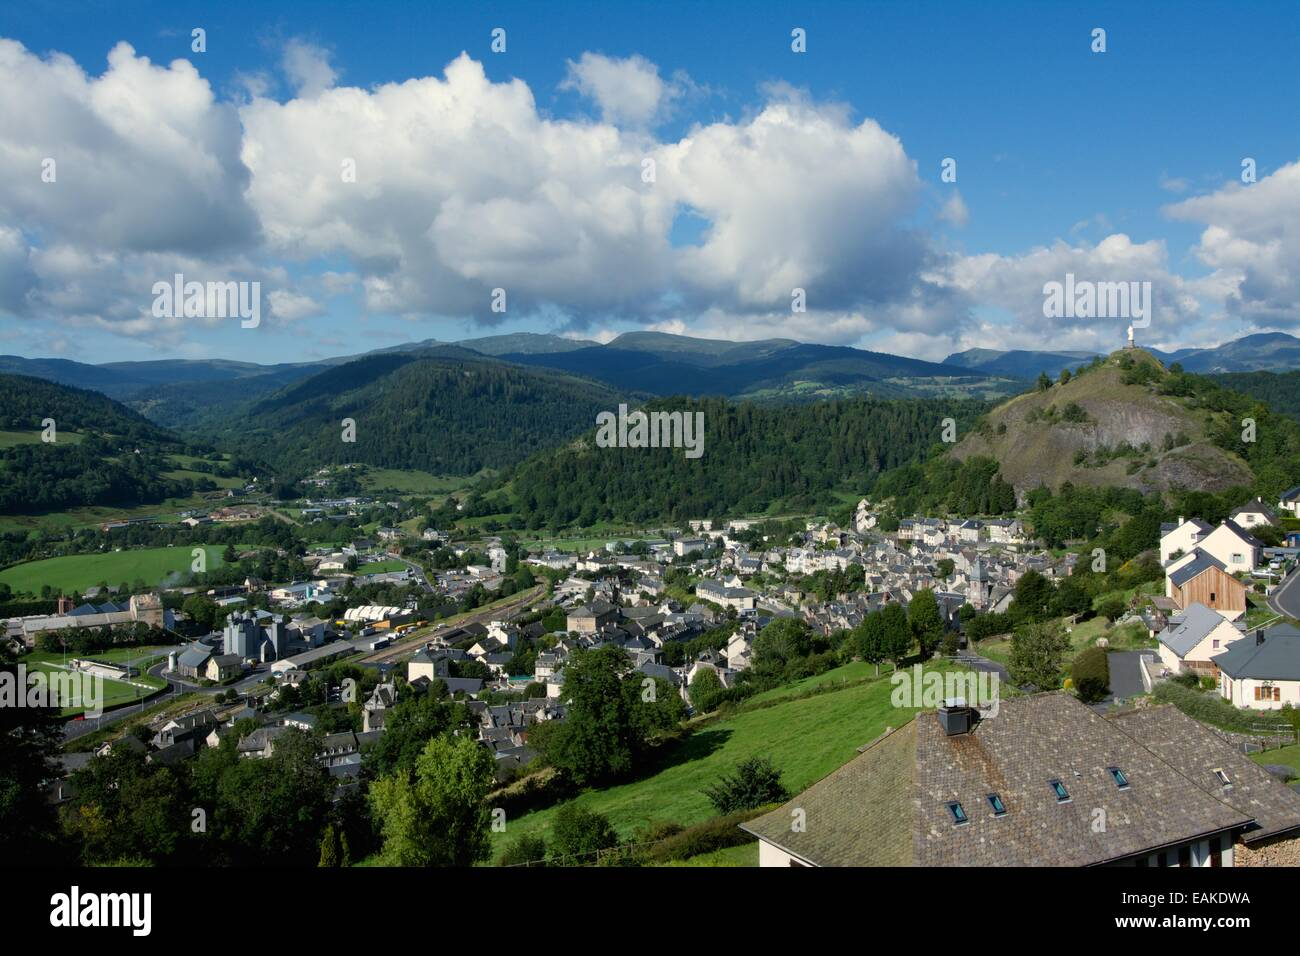 Town of Murat, Cantal, Auvergne, France, Europe - Stock Image